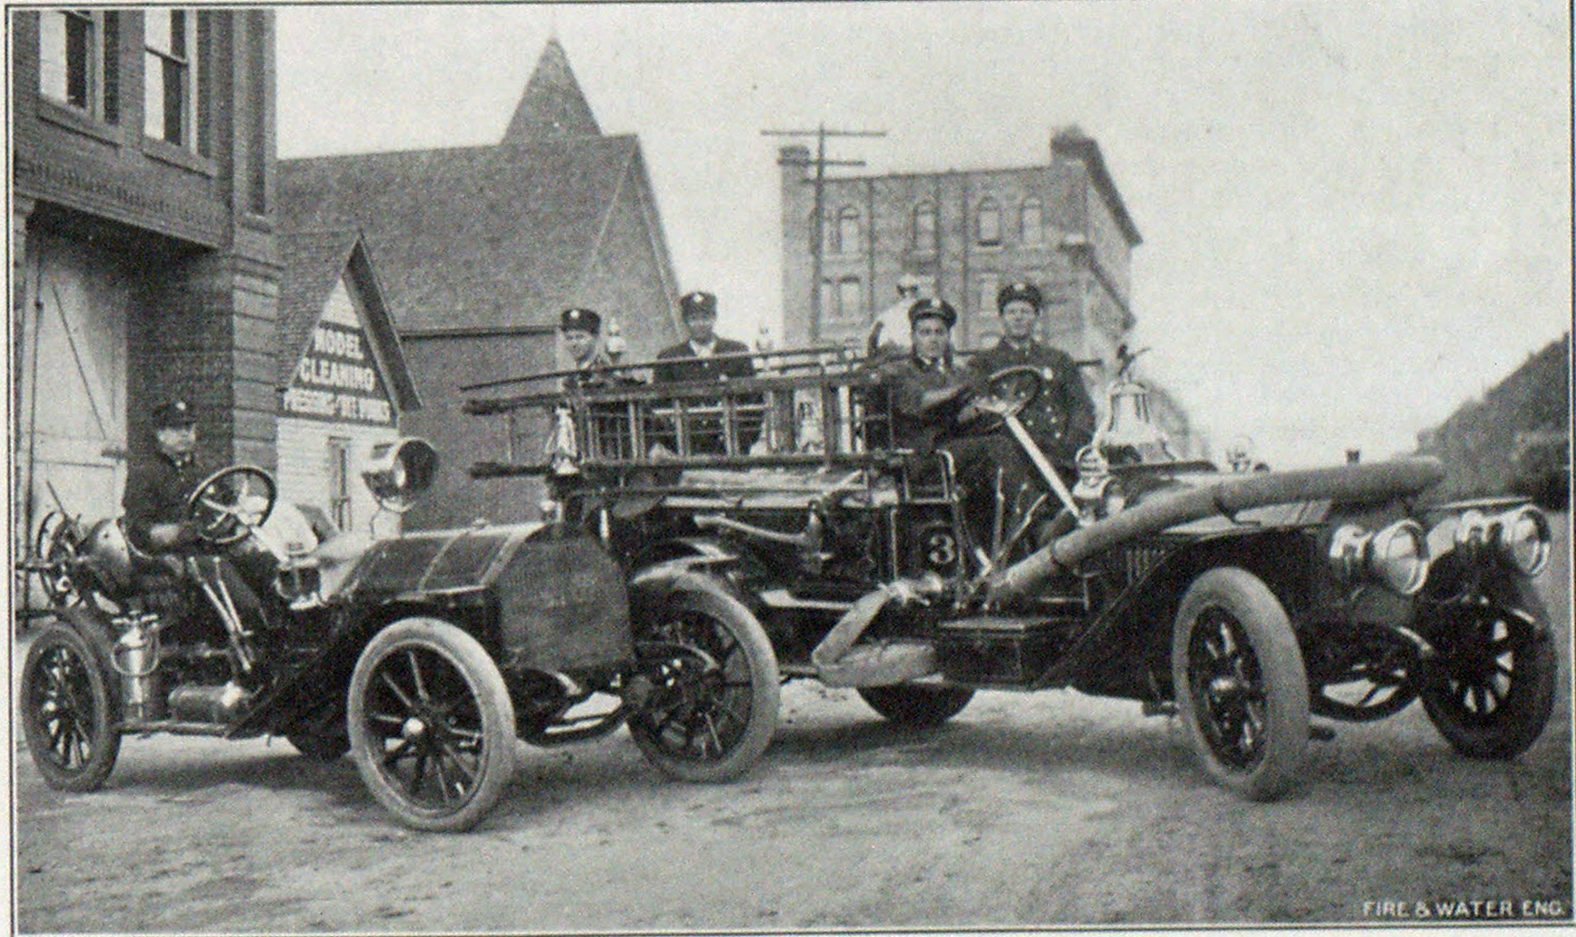 MOTOR ENGINE AND AUTOMOBILE OF CHIEF ALDER, TULSA.